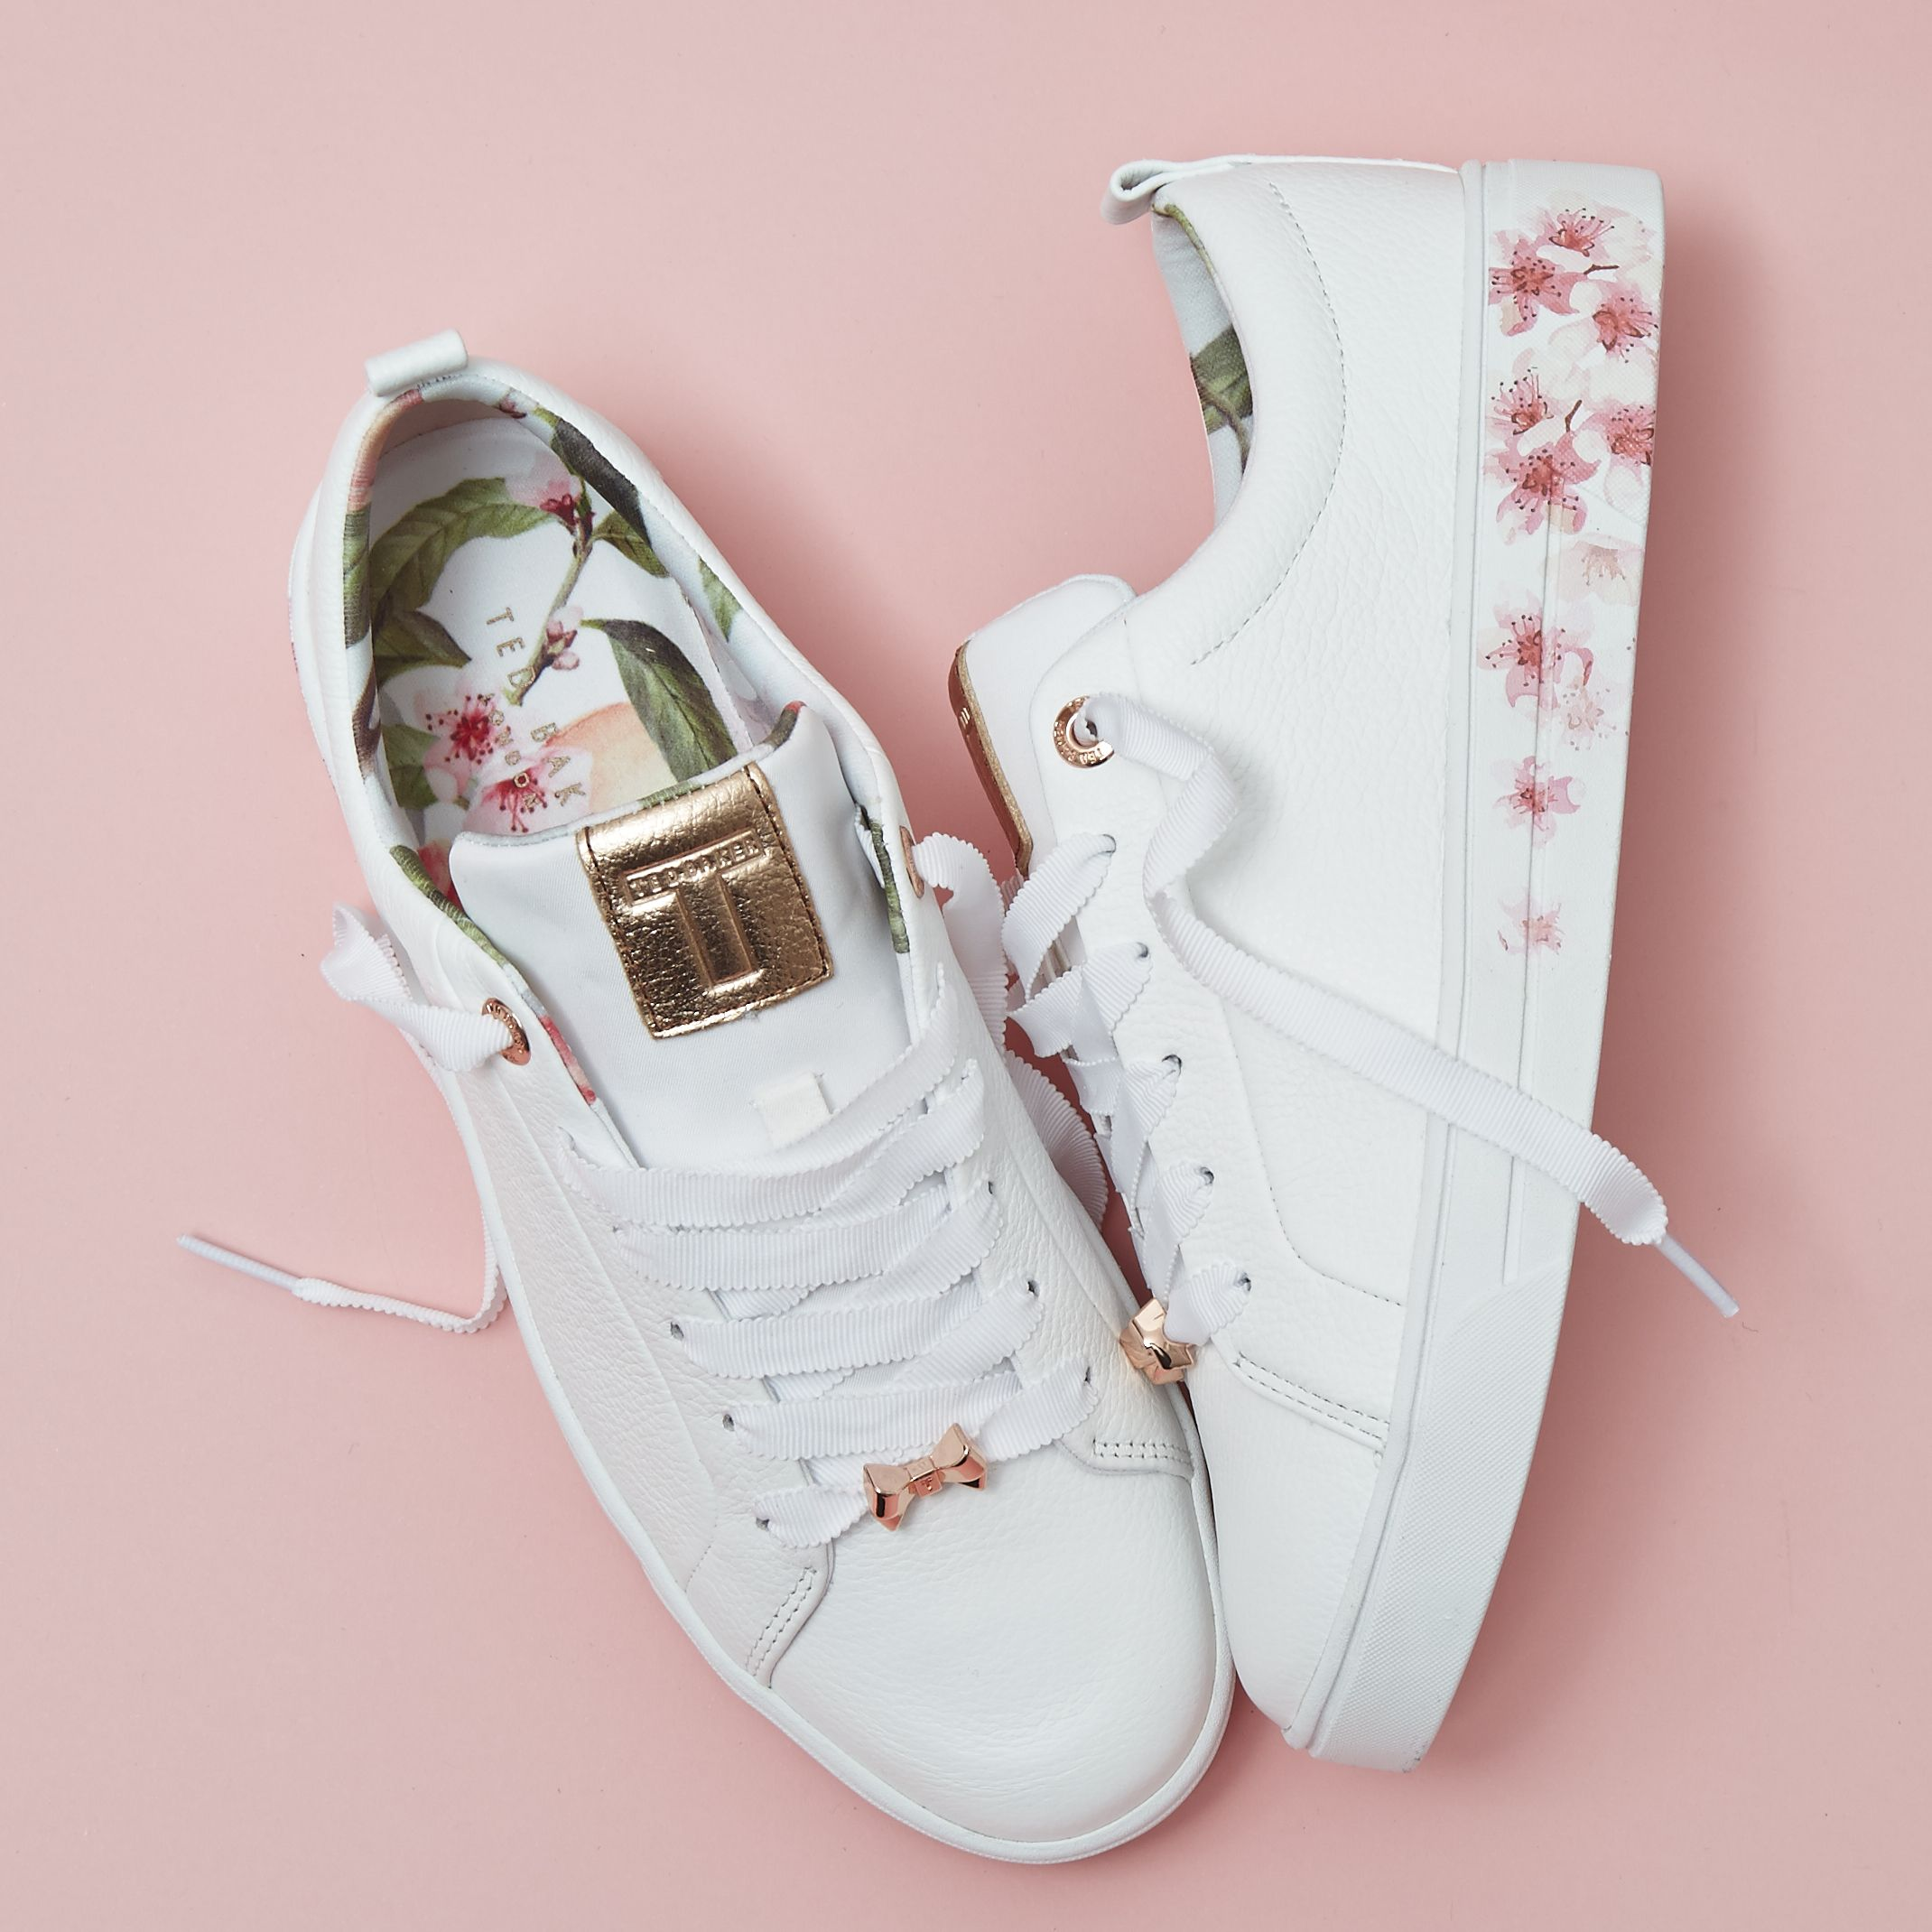 25716cb3ea23 Time to treat yourself to  ted baker Kelleip Sneakers in White  Leather liveyourbestlife  tedbaker